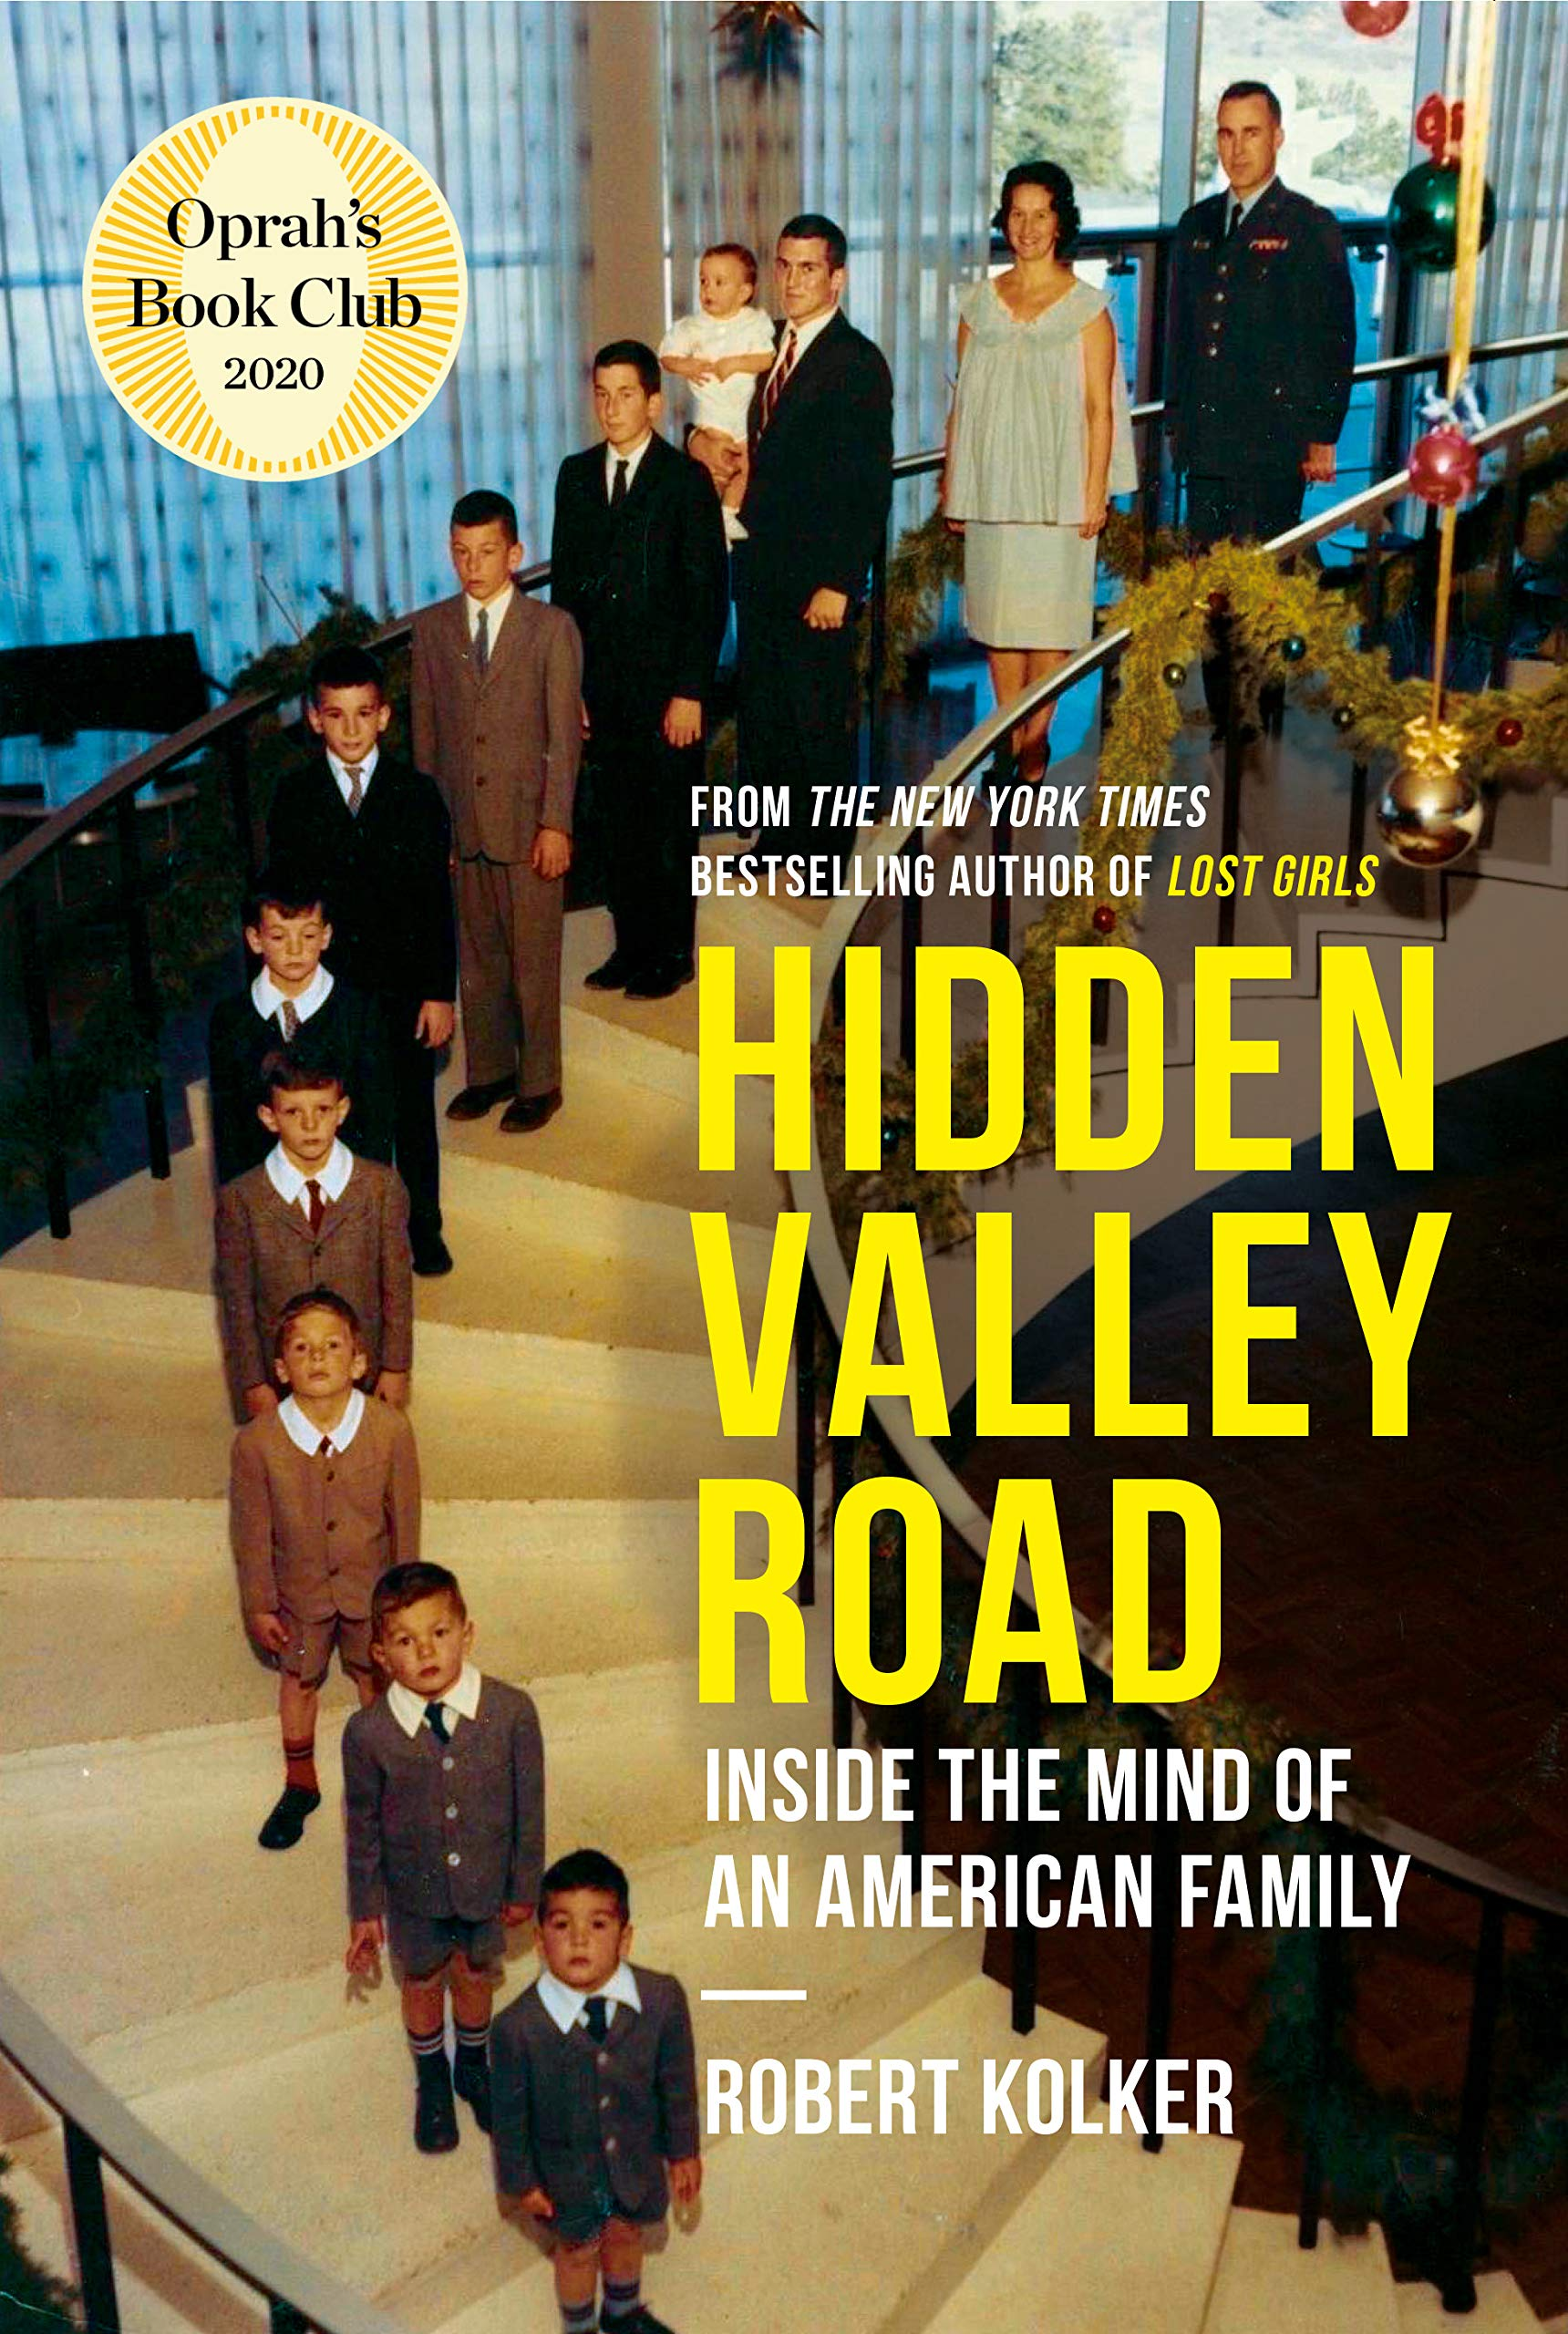 Amazon.com: Hidden Valley Road: Inside the Mind of an American Family (9780735274457): Kolker, Robert: Books